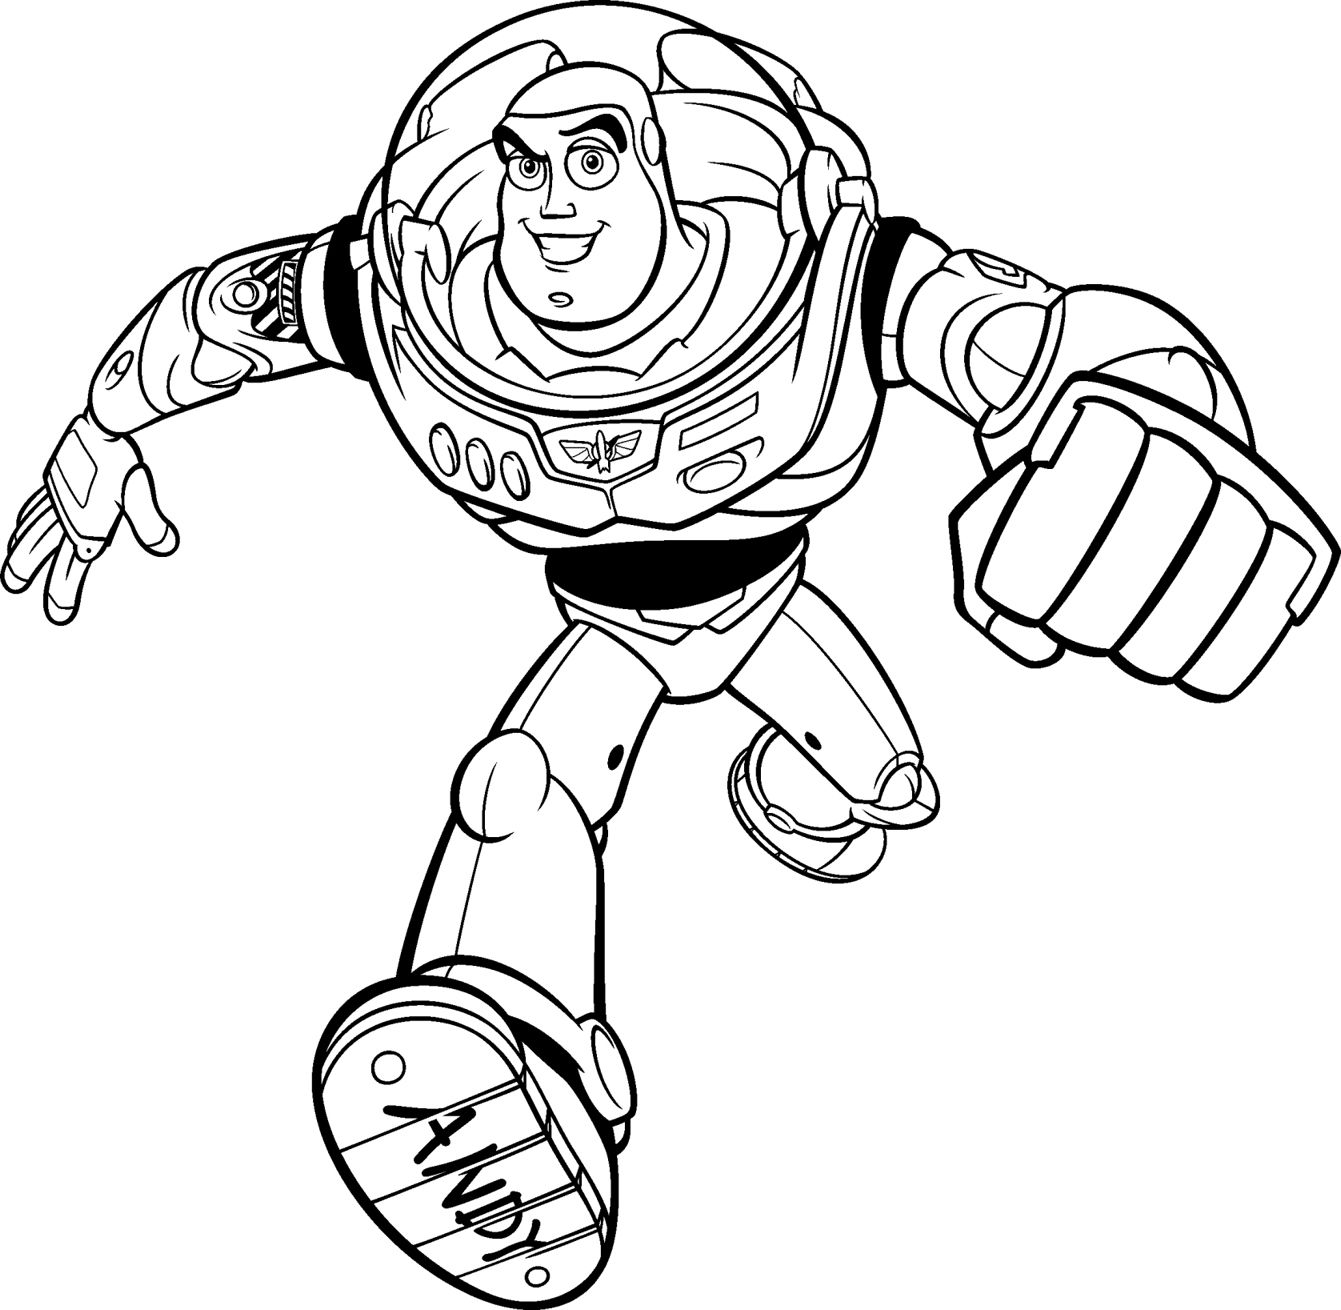 Buzz Lightyear Coloring Pages